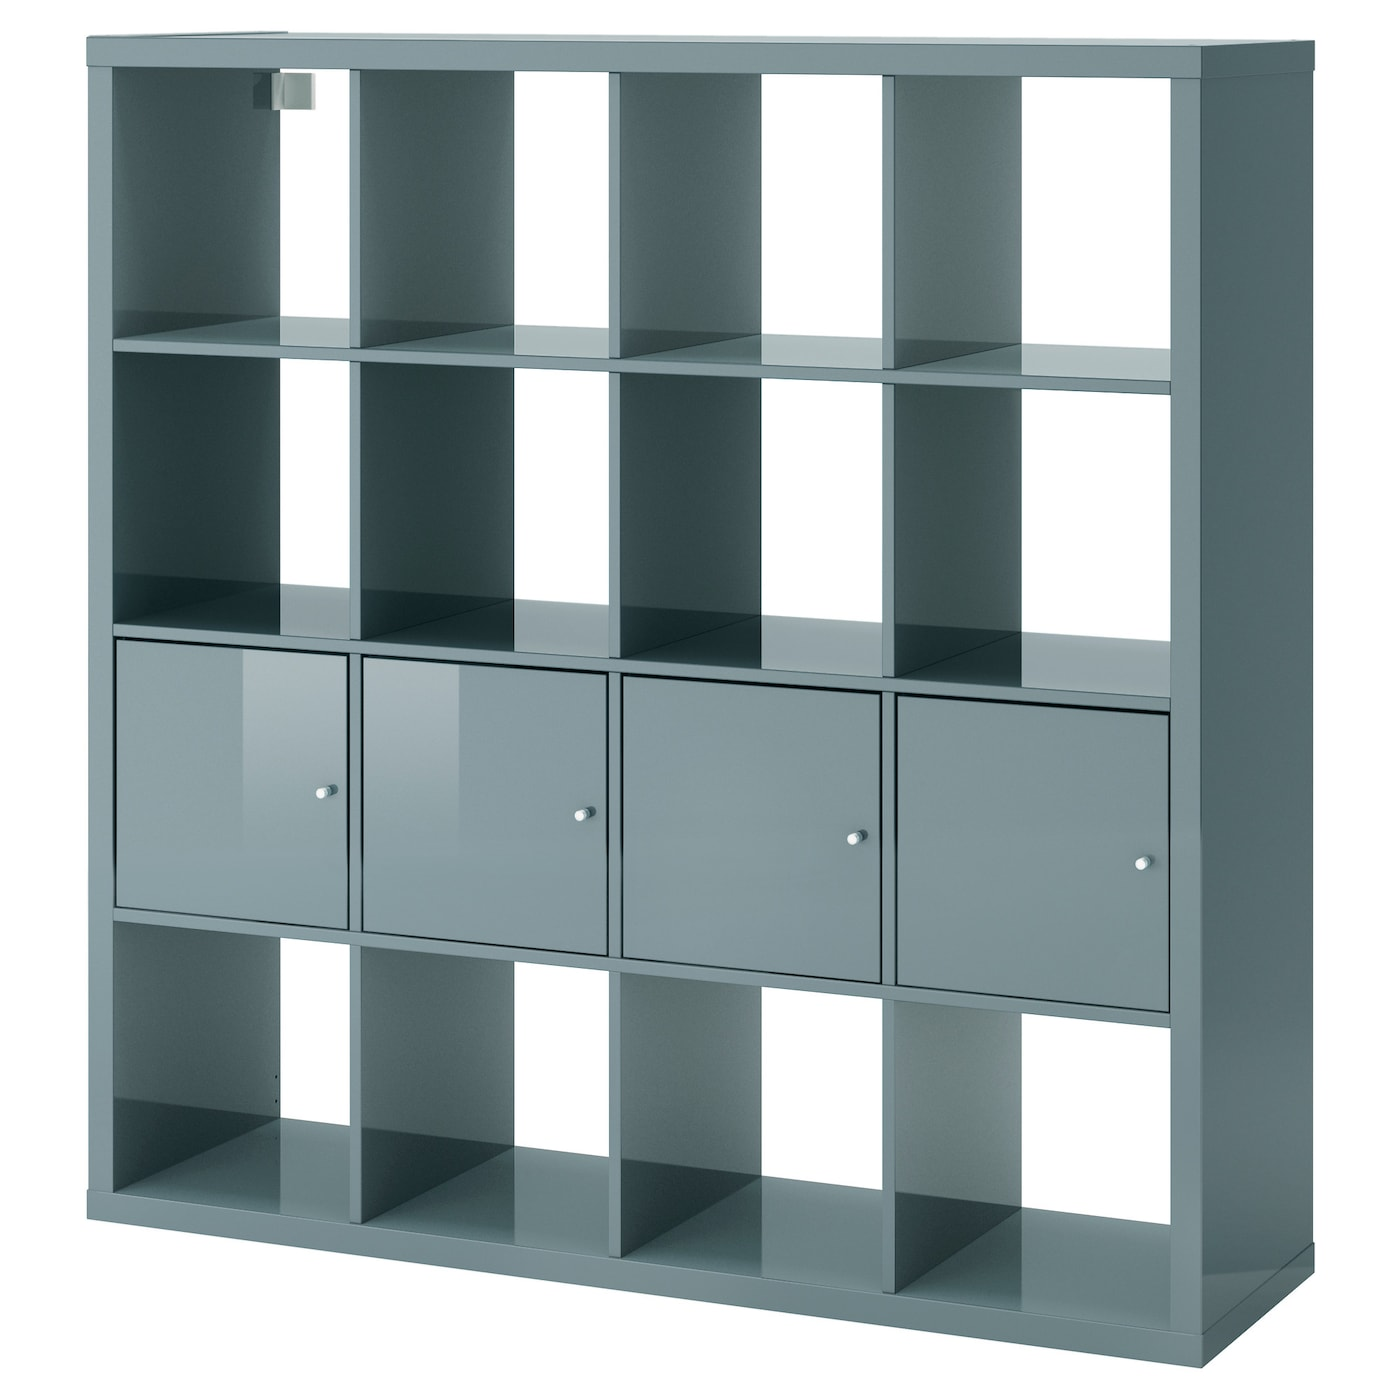 Kallax shelving unit with 4 inserts high gloss grey turquoise 147x147 cm ikea - Bibliotheque etagere murale ...